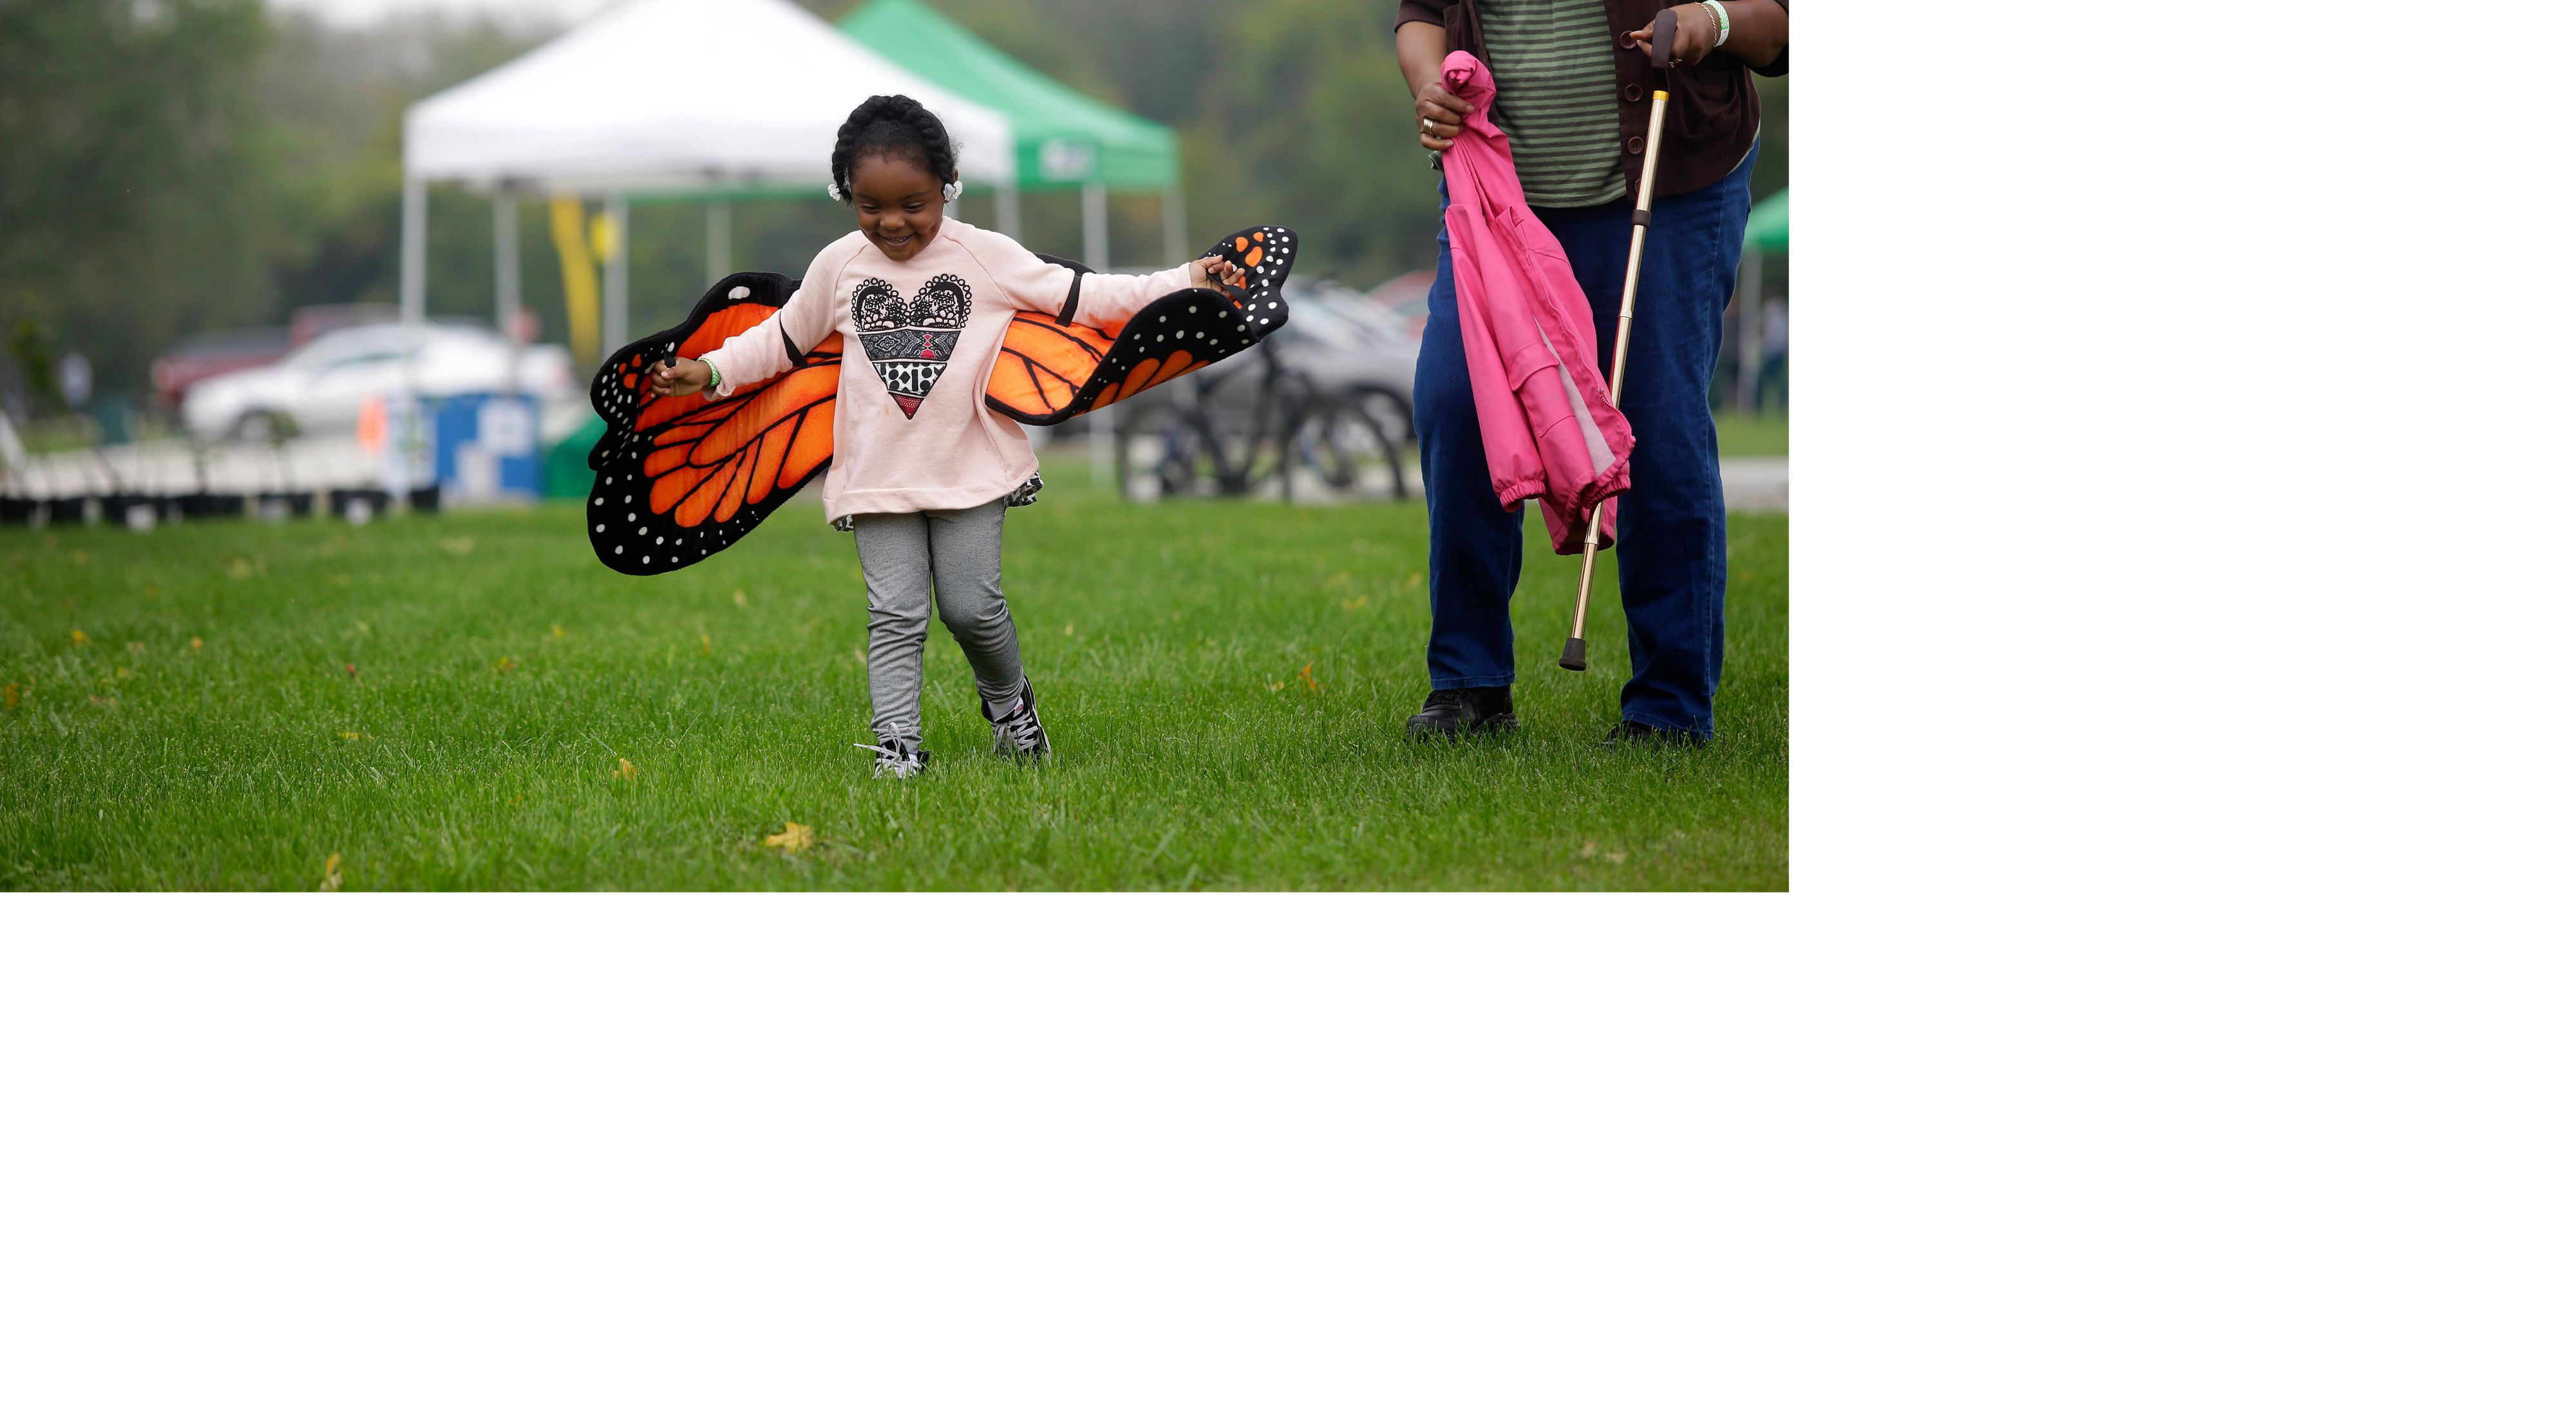 Families participated in the Awe of Nature event at Midlothian Meadows.